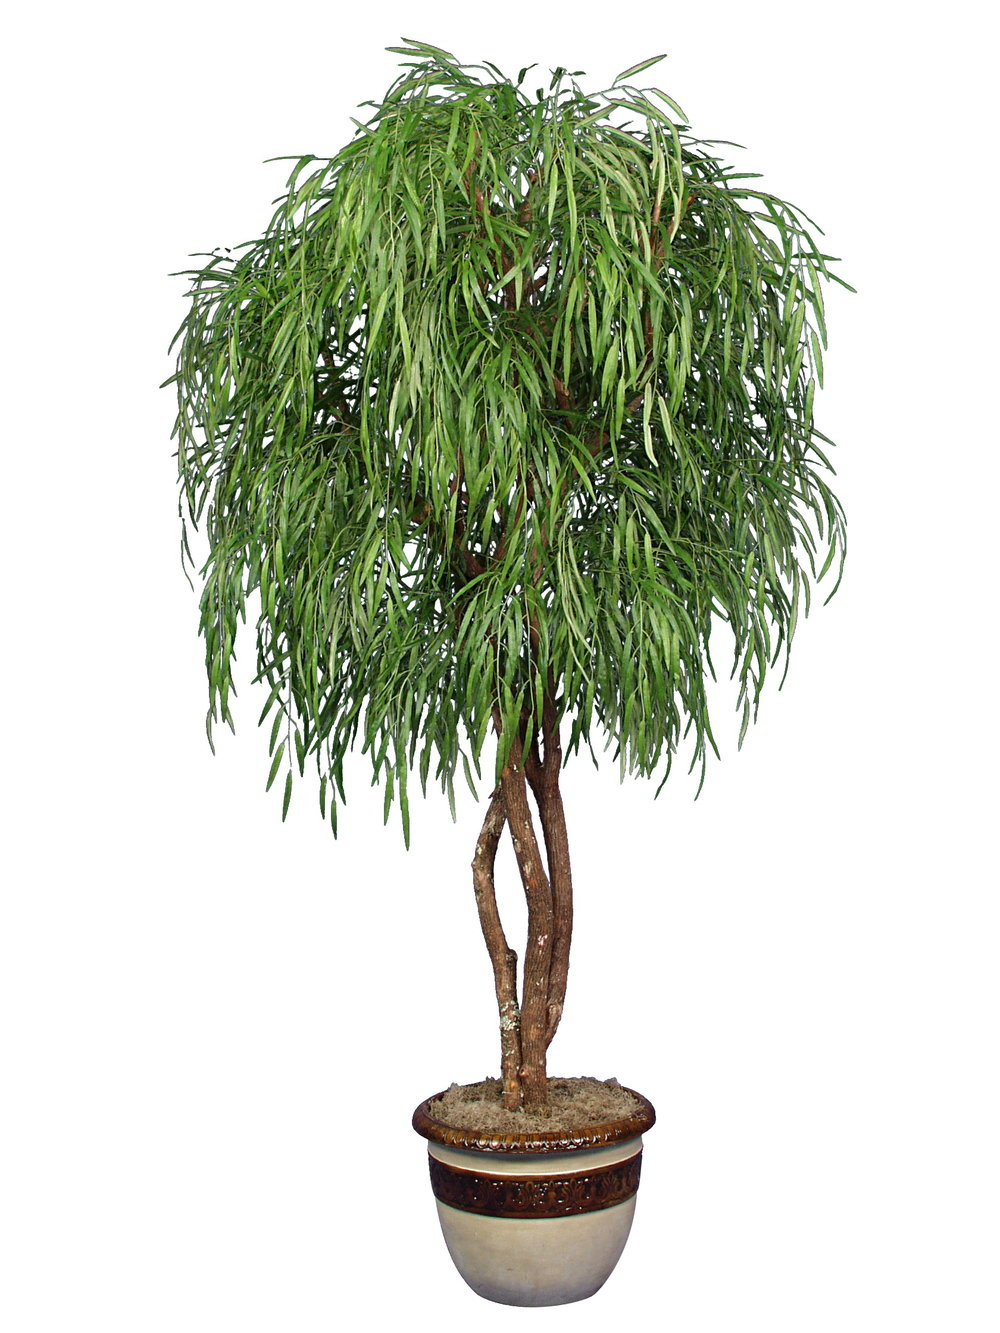 TSP 1482- Weeping Willow